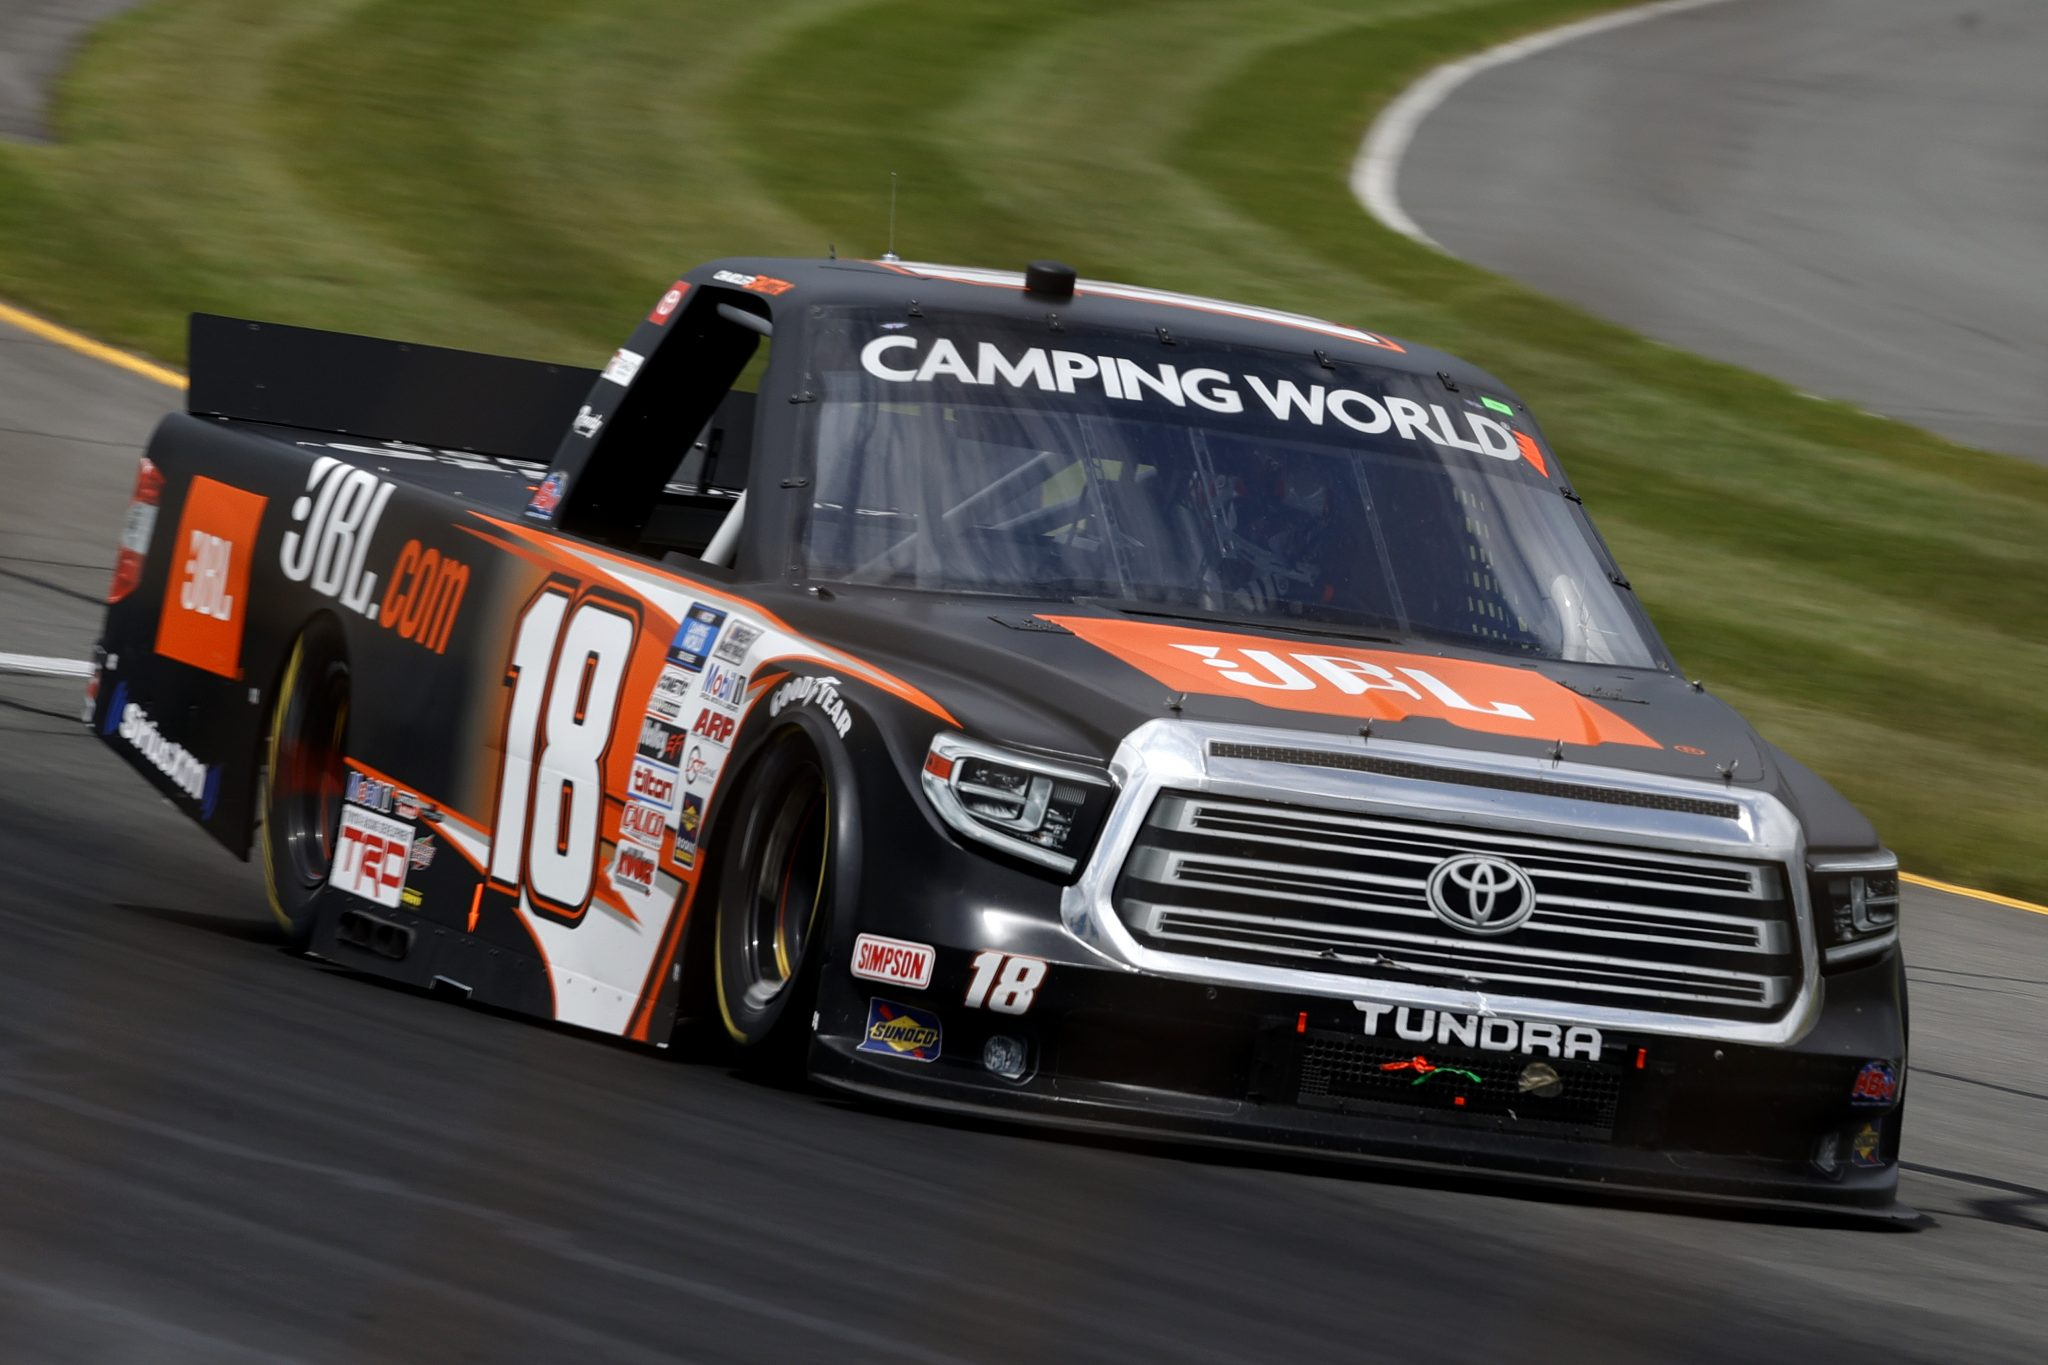 LONG POND, PENNSYLVANIA - JUNE 26: Chandler Smith, driver of the #18 JBL Toyota, drives during the NASCAR Camping World Truck Series CRC Brakleen 150 at Pocono Raceway on June 26, 2021 in Long Pond, Pennsylvania. (Photo by Tim Nwachukwu/Getty Images) | Getty Images